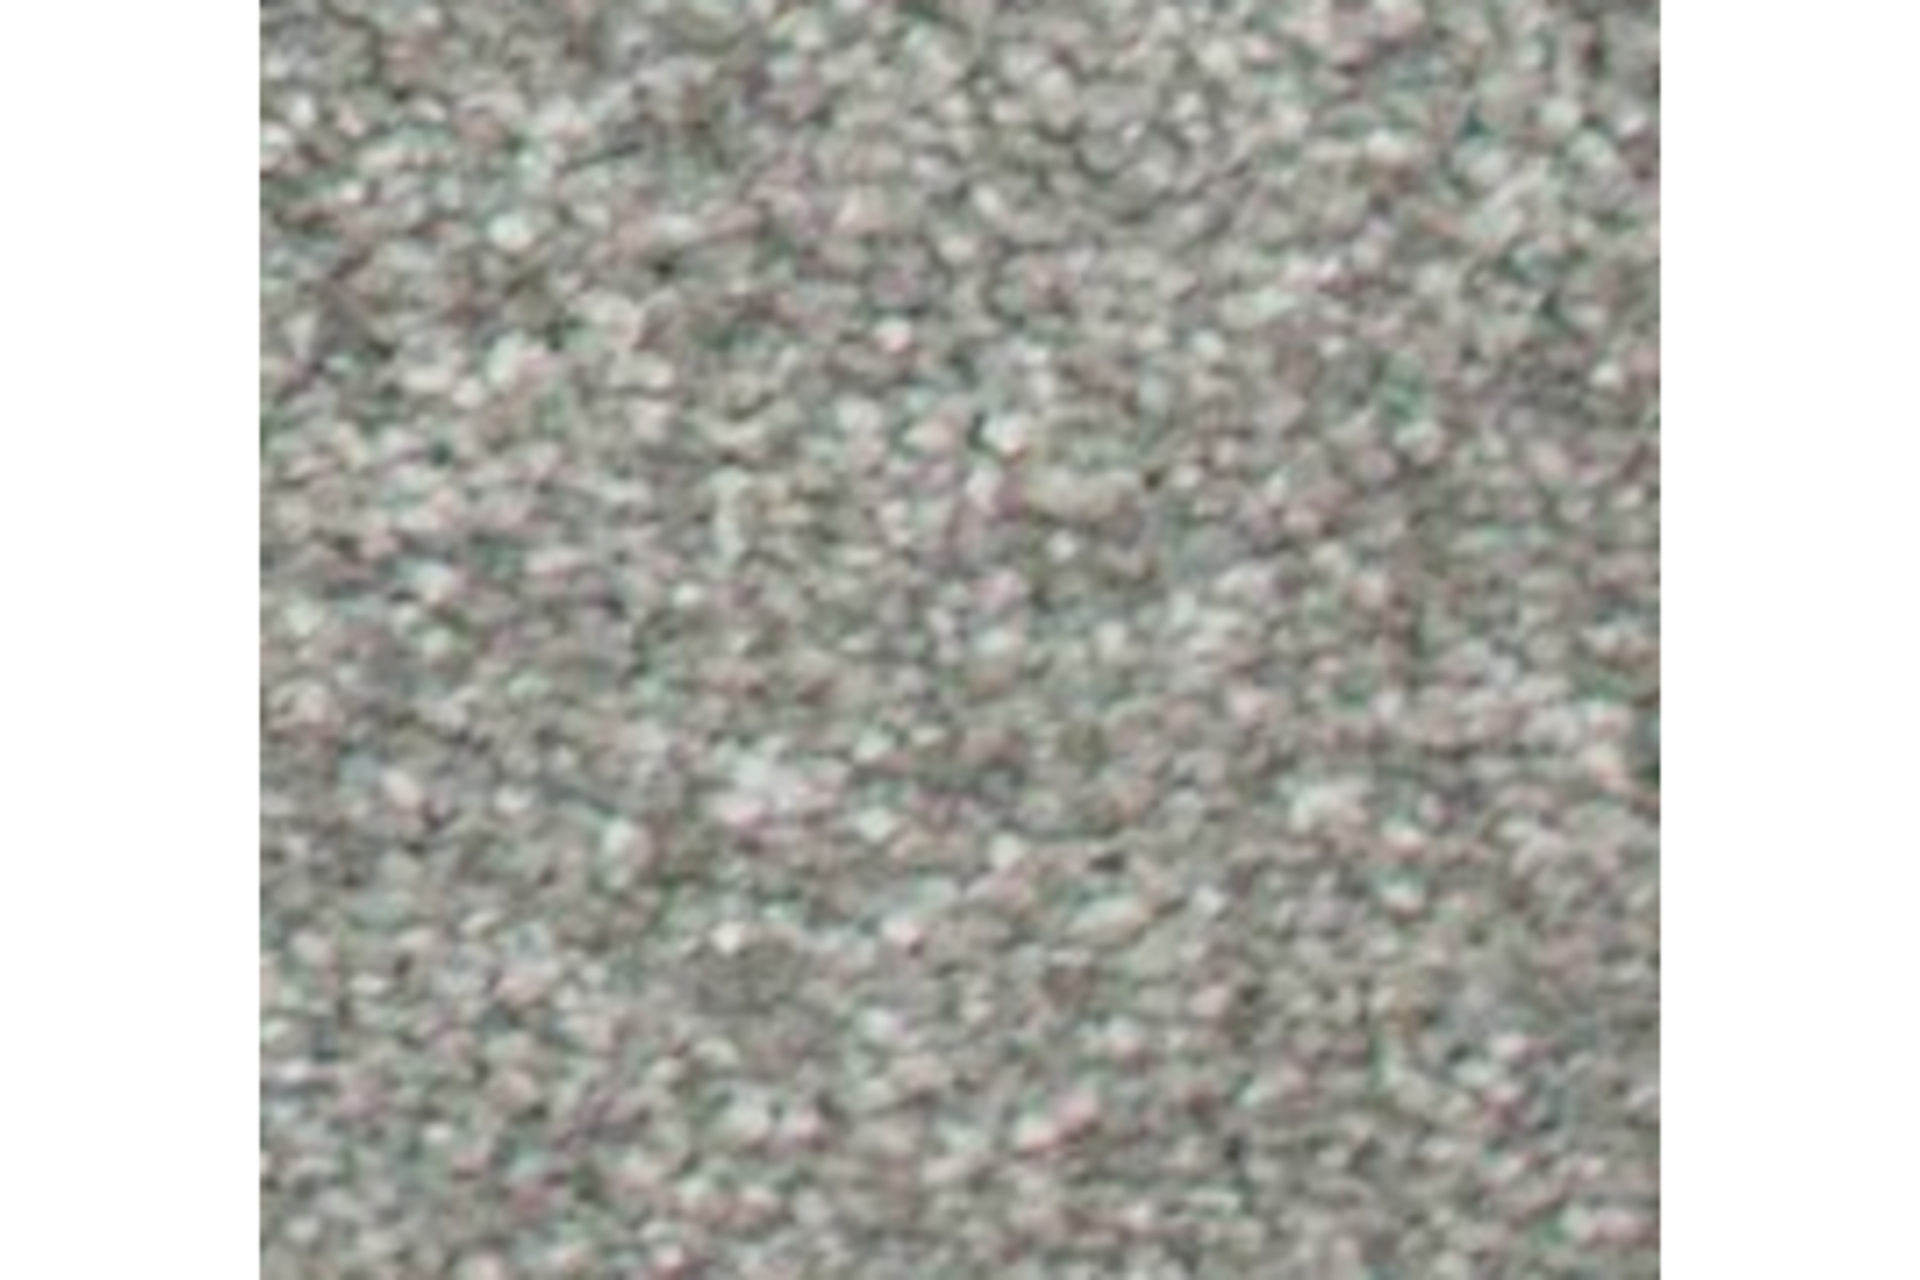 RRP £160 Bagged And Rolled Lynmouth Twist Cloudy Bay 4M X 1.55M Carpet (094092) (Appraisals